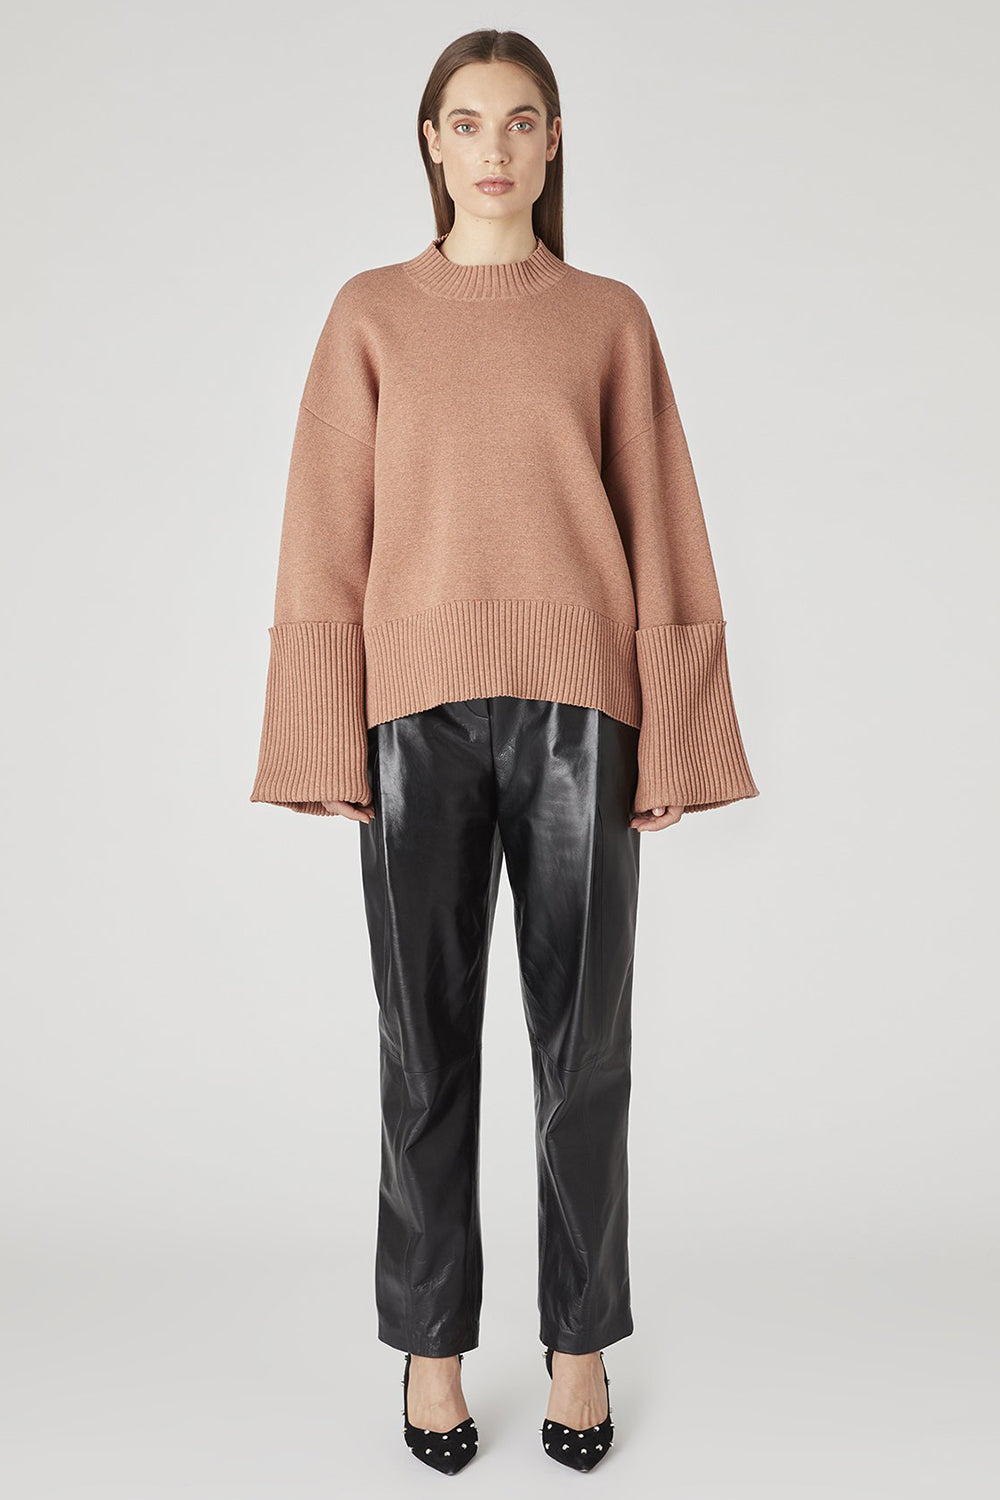 Camilla And Marc / Jovanna Knit Top / Cinnamon